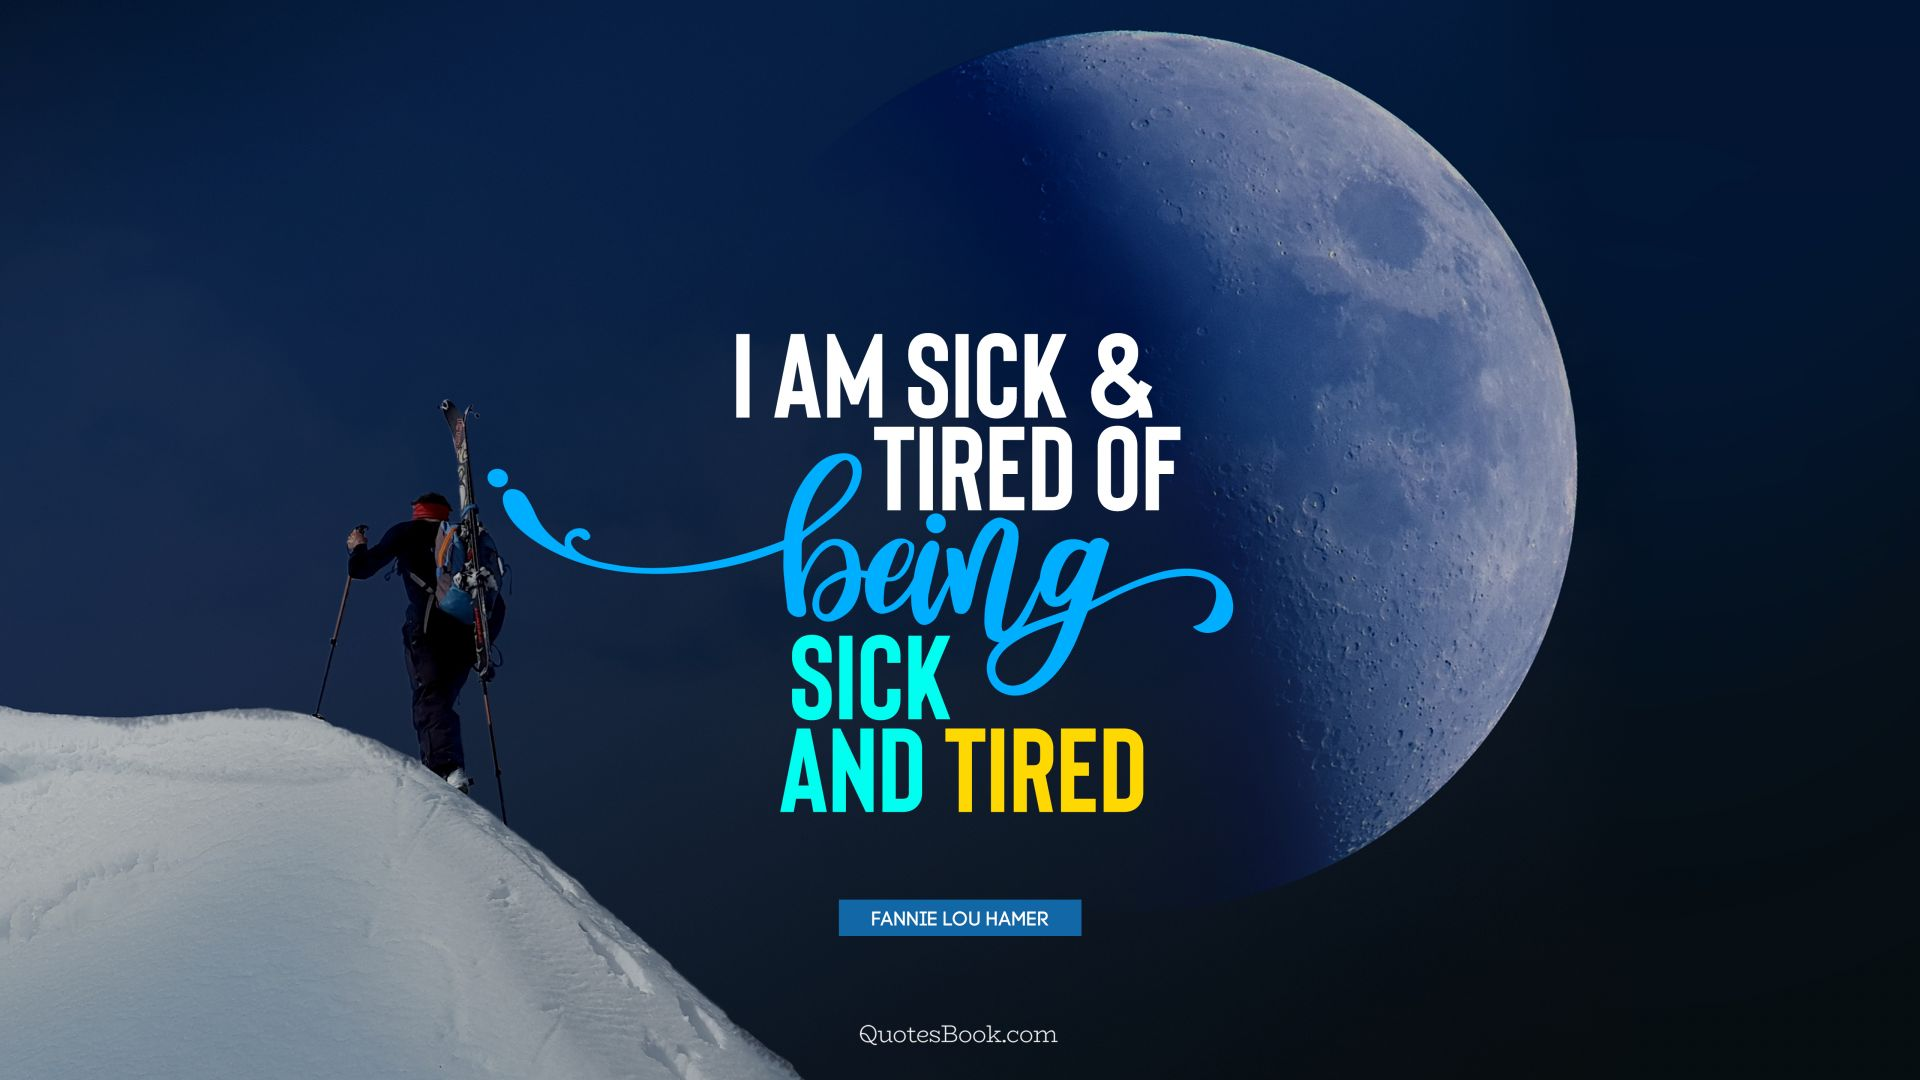 I am sick and tired of being sick and tired. - Quote by Fannie Lou Hamer